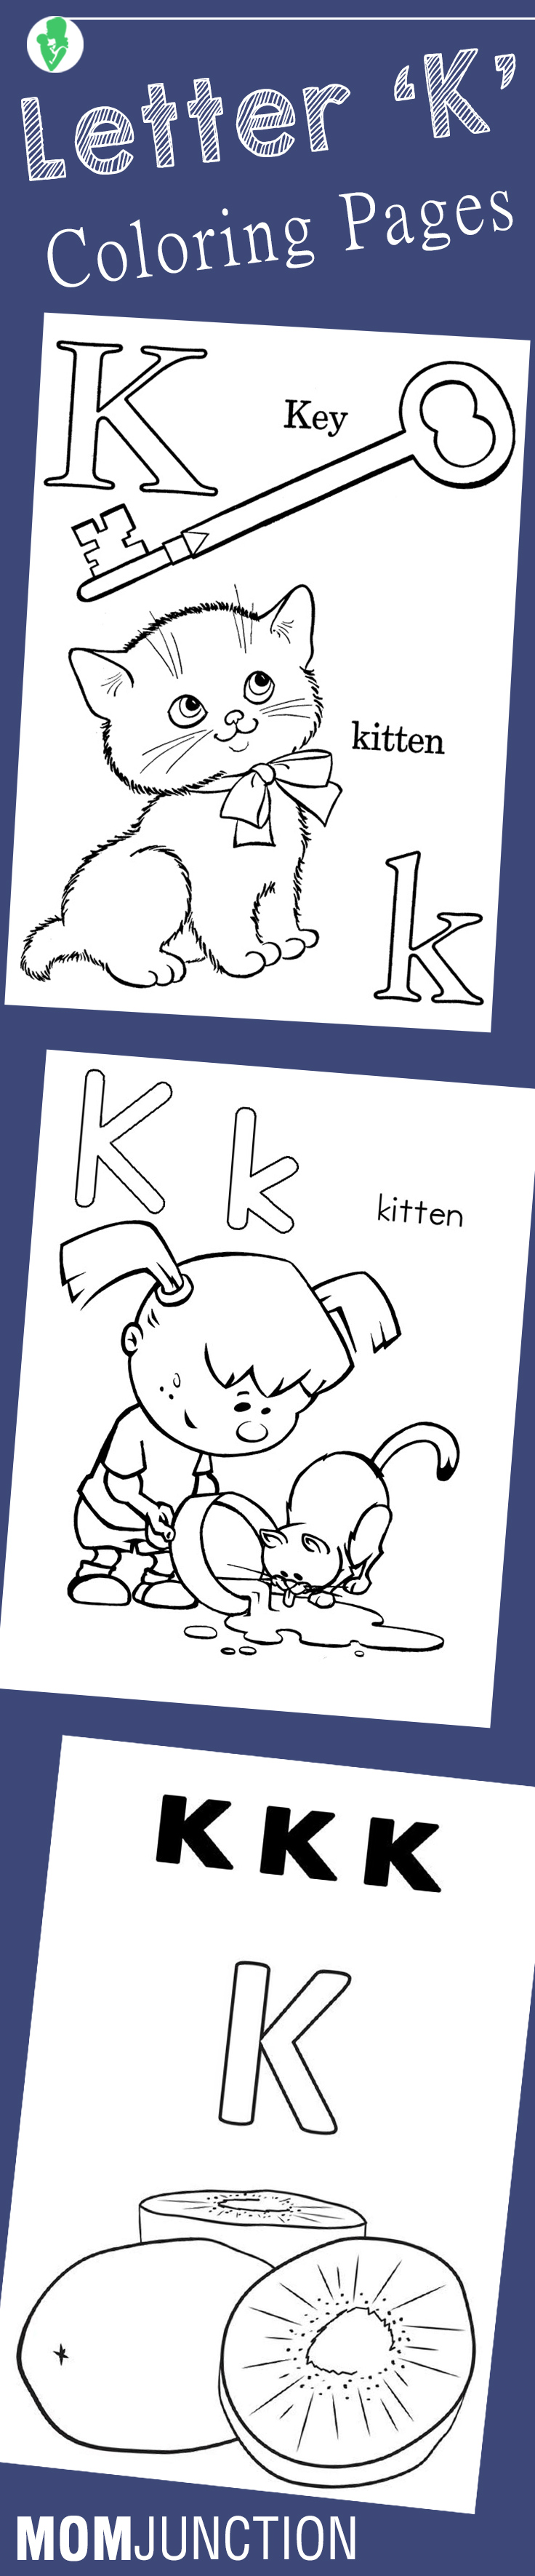 Top 10 Letter K Coloring Pages Your Toddler Will Love To Learn ...